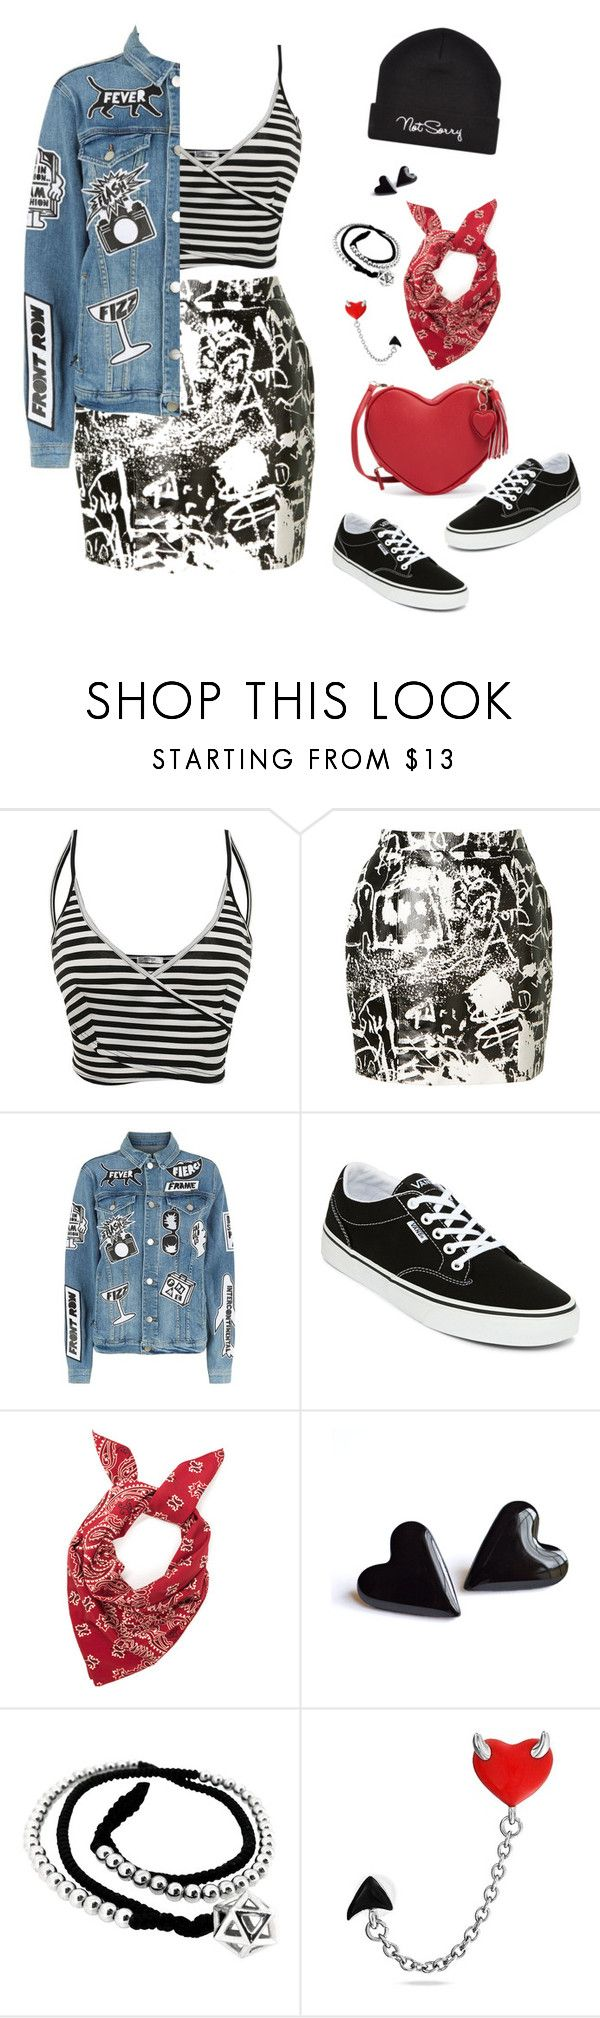 """""""Sk8r Grl"""" by km-r7 ❤ liked on Polyvore featuring Yves Saint Laurent, Frame, Vans, John Brevard and Bling Jewelry"""